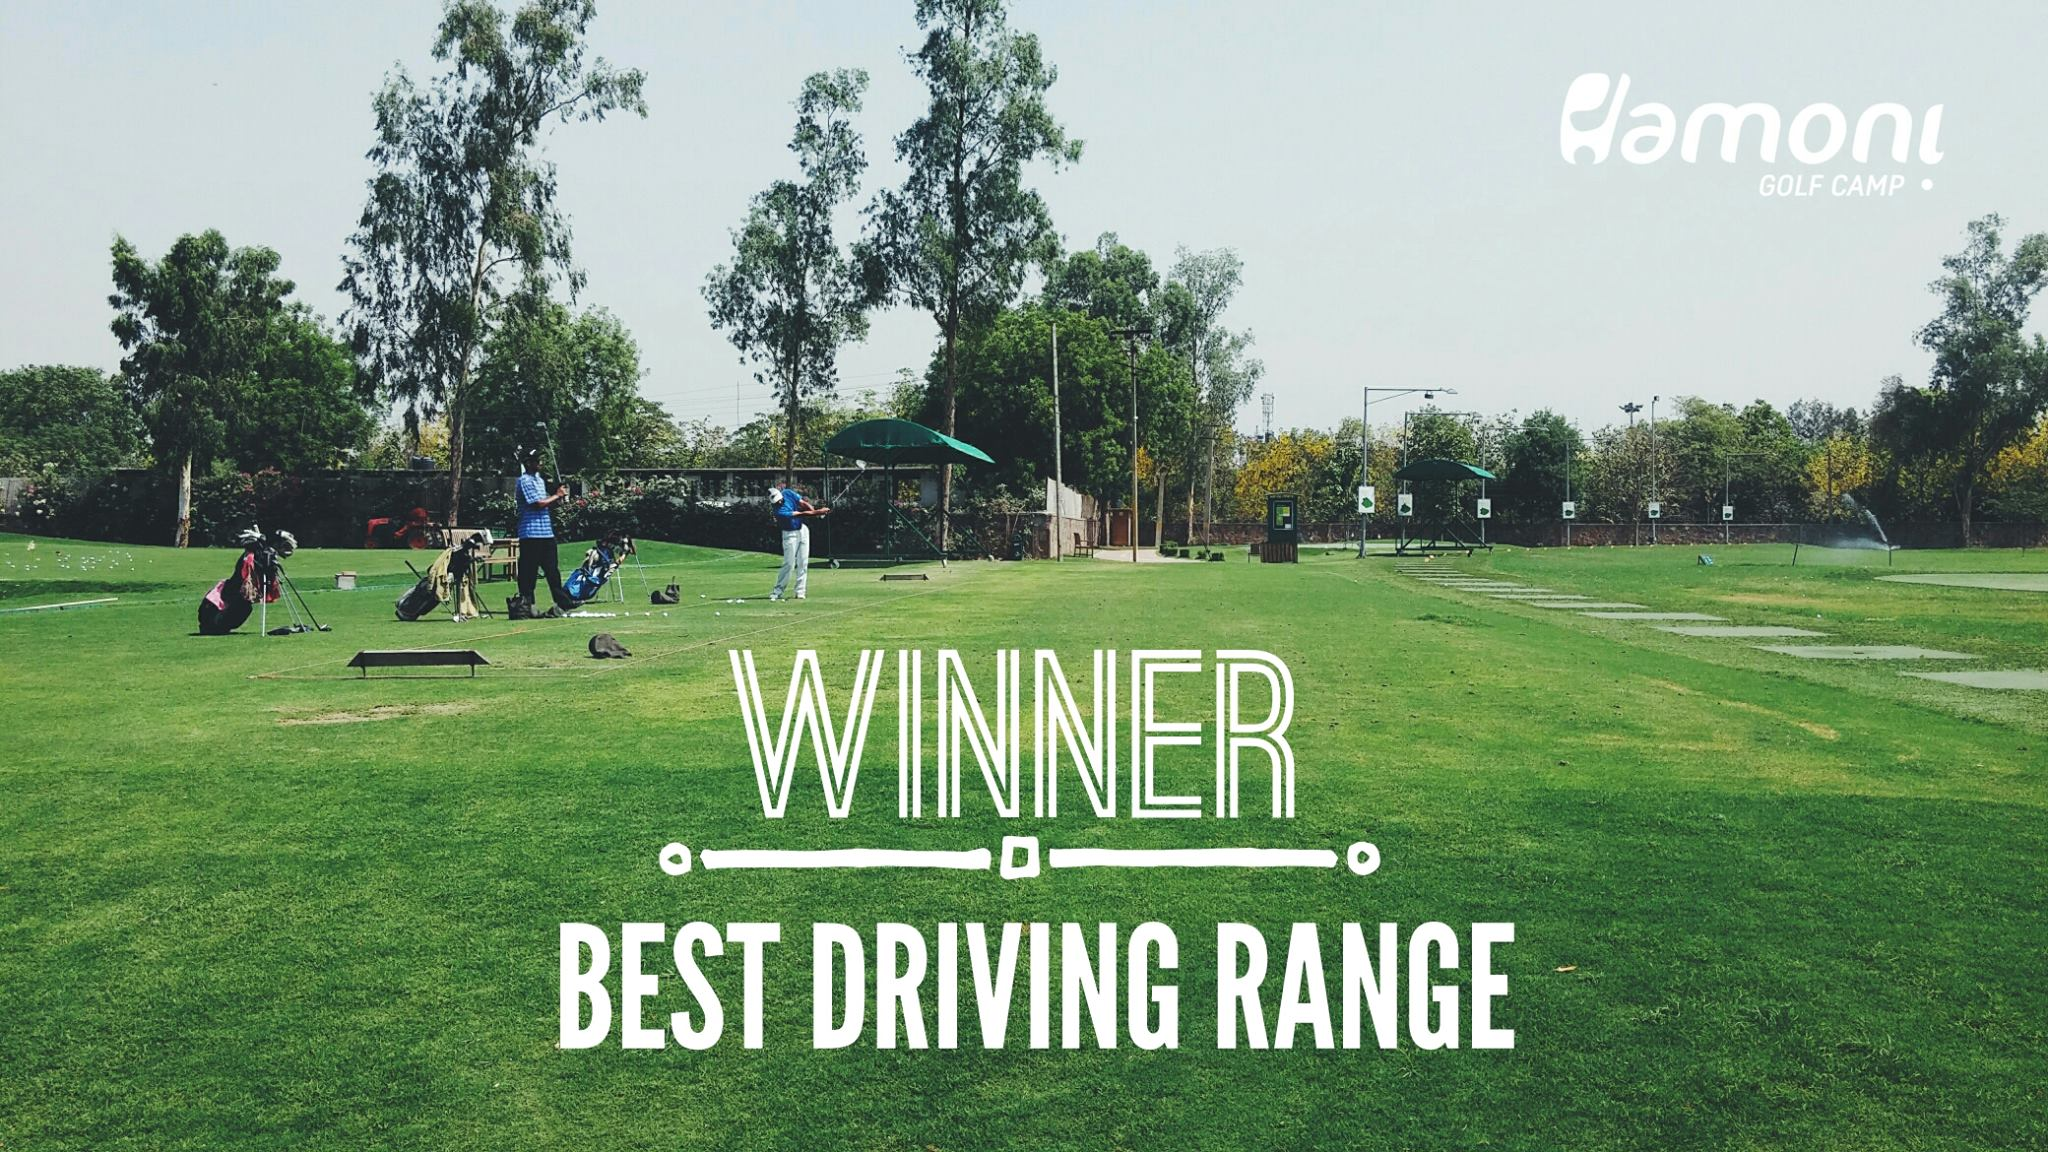 Hamoni Golf Camp wins the Best Driving Range Award at The Indian Golf Expo, 2016!